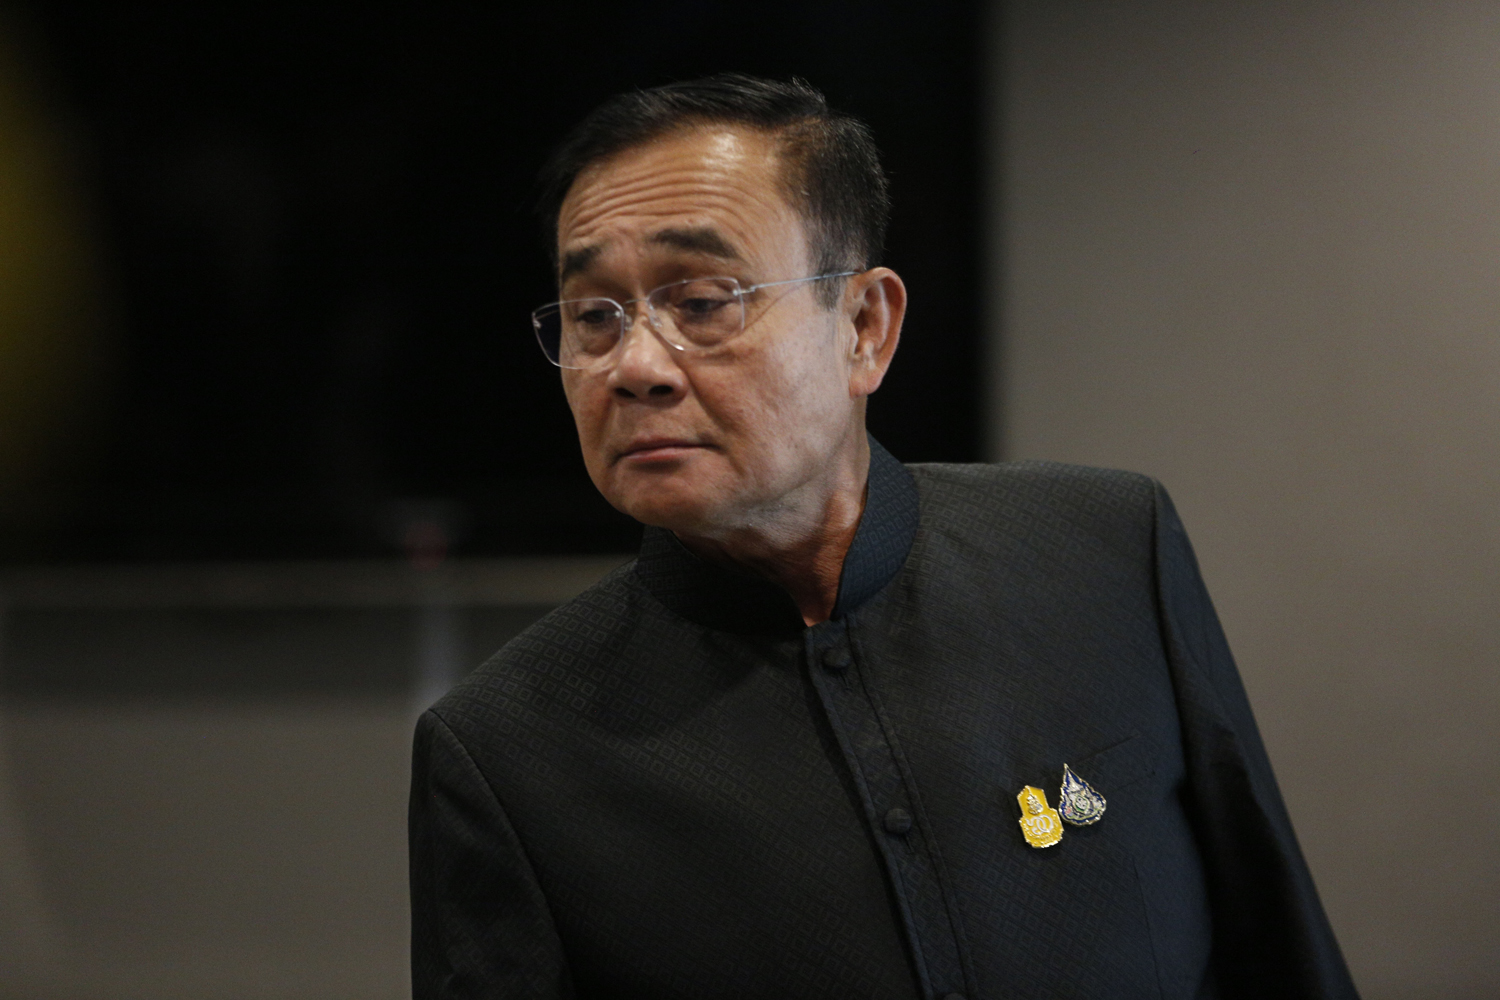 Prime Minister Prayut Chan-o-cha has ordered state agencies to speed up budget disbursement for fiscal 2019, which ends next month.